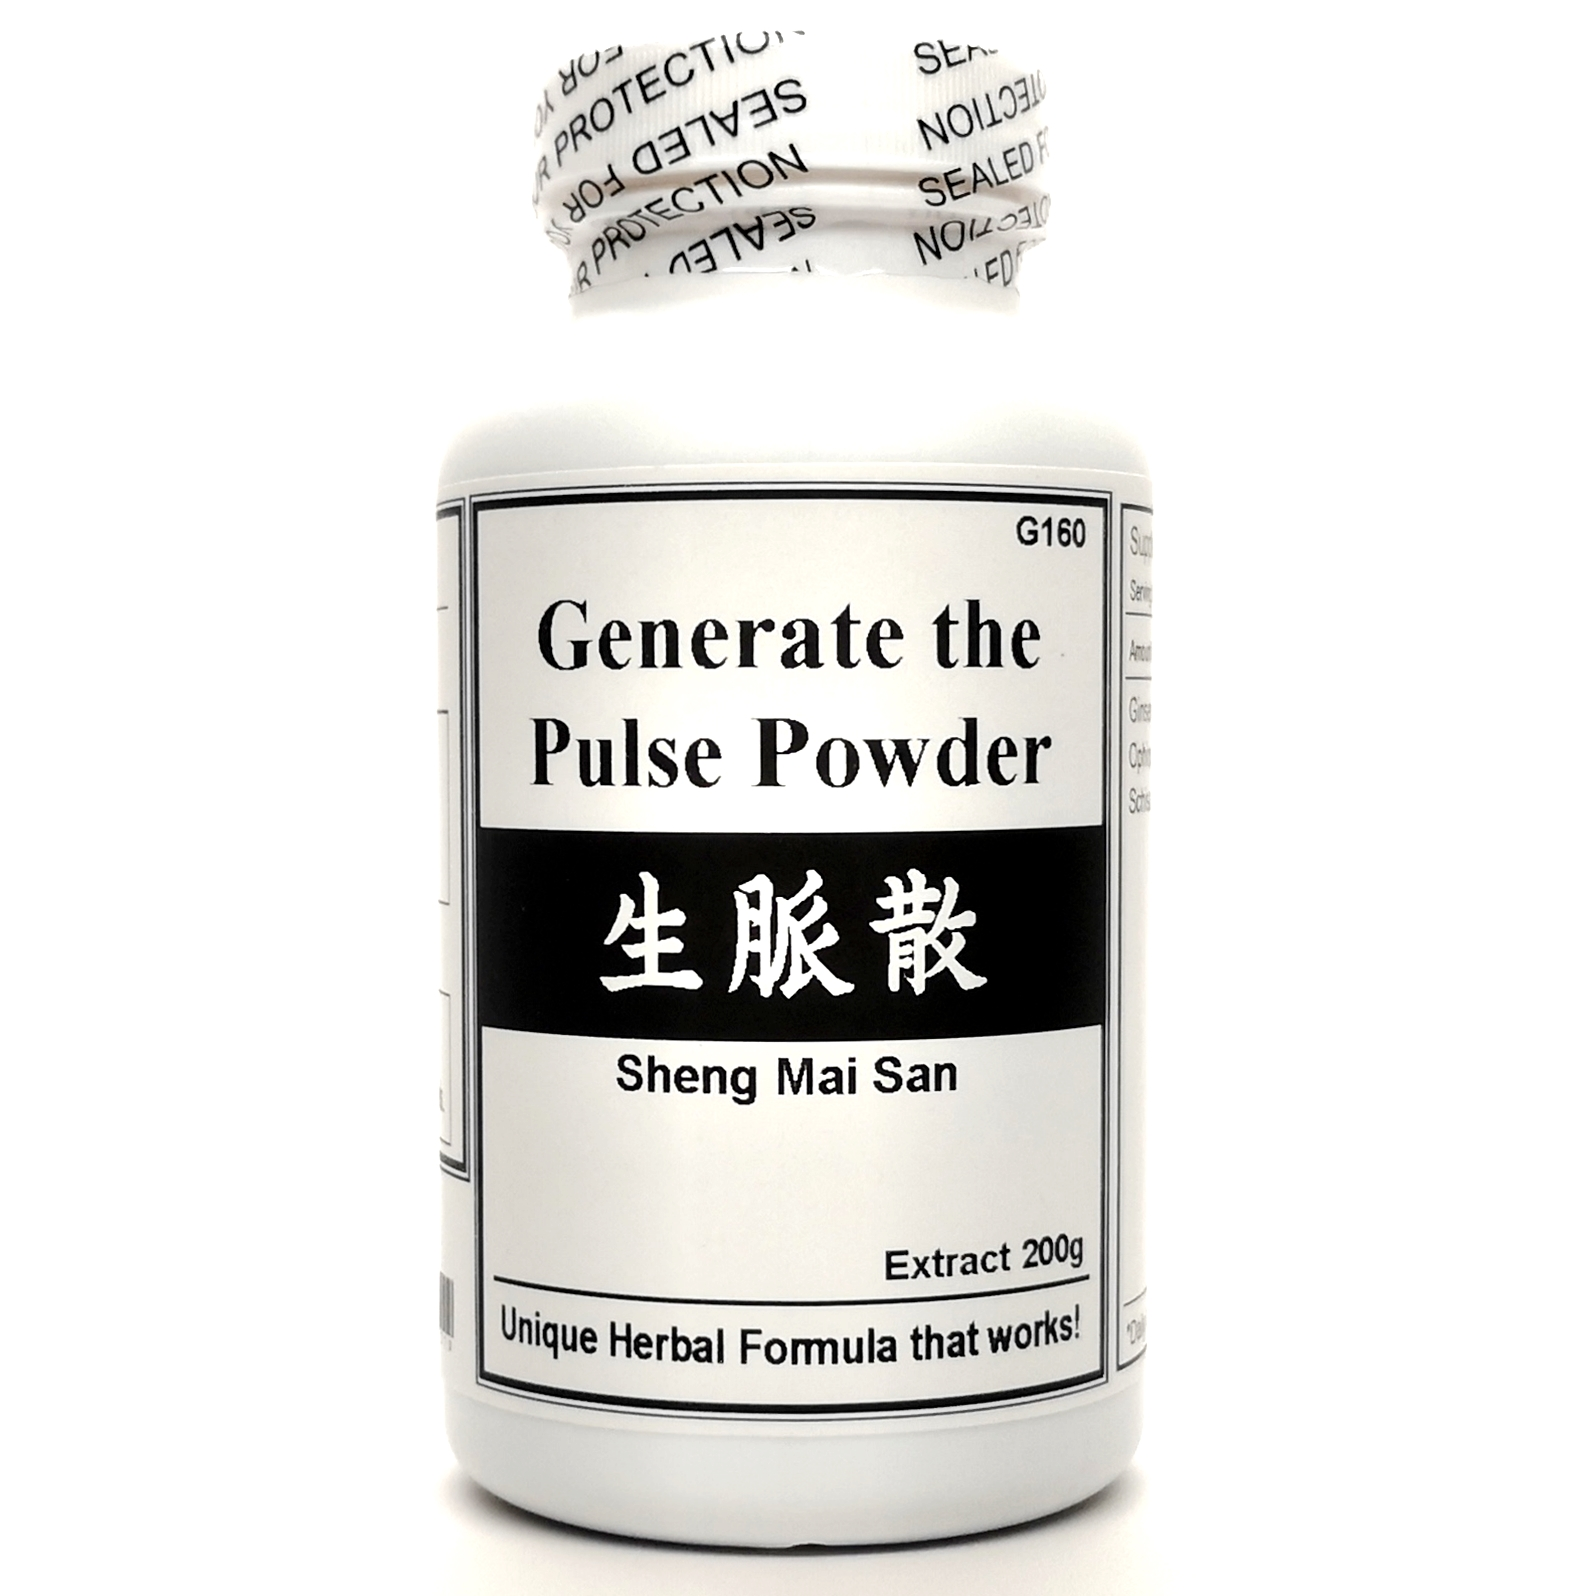 Generate the Pulse Powder Extract Powder Instant Herbal Tea 180g  (Sheng Mai San)